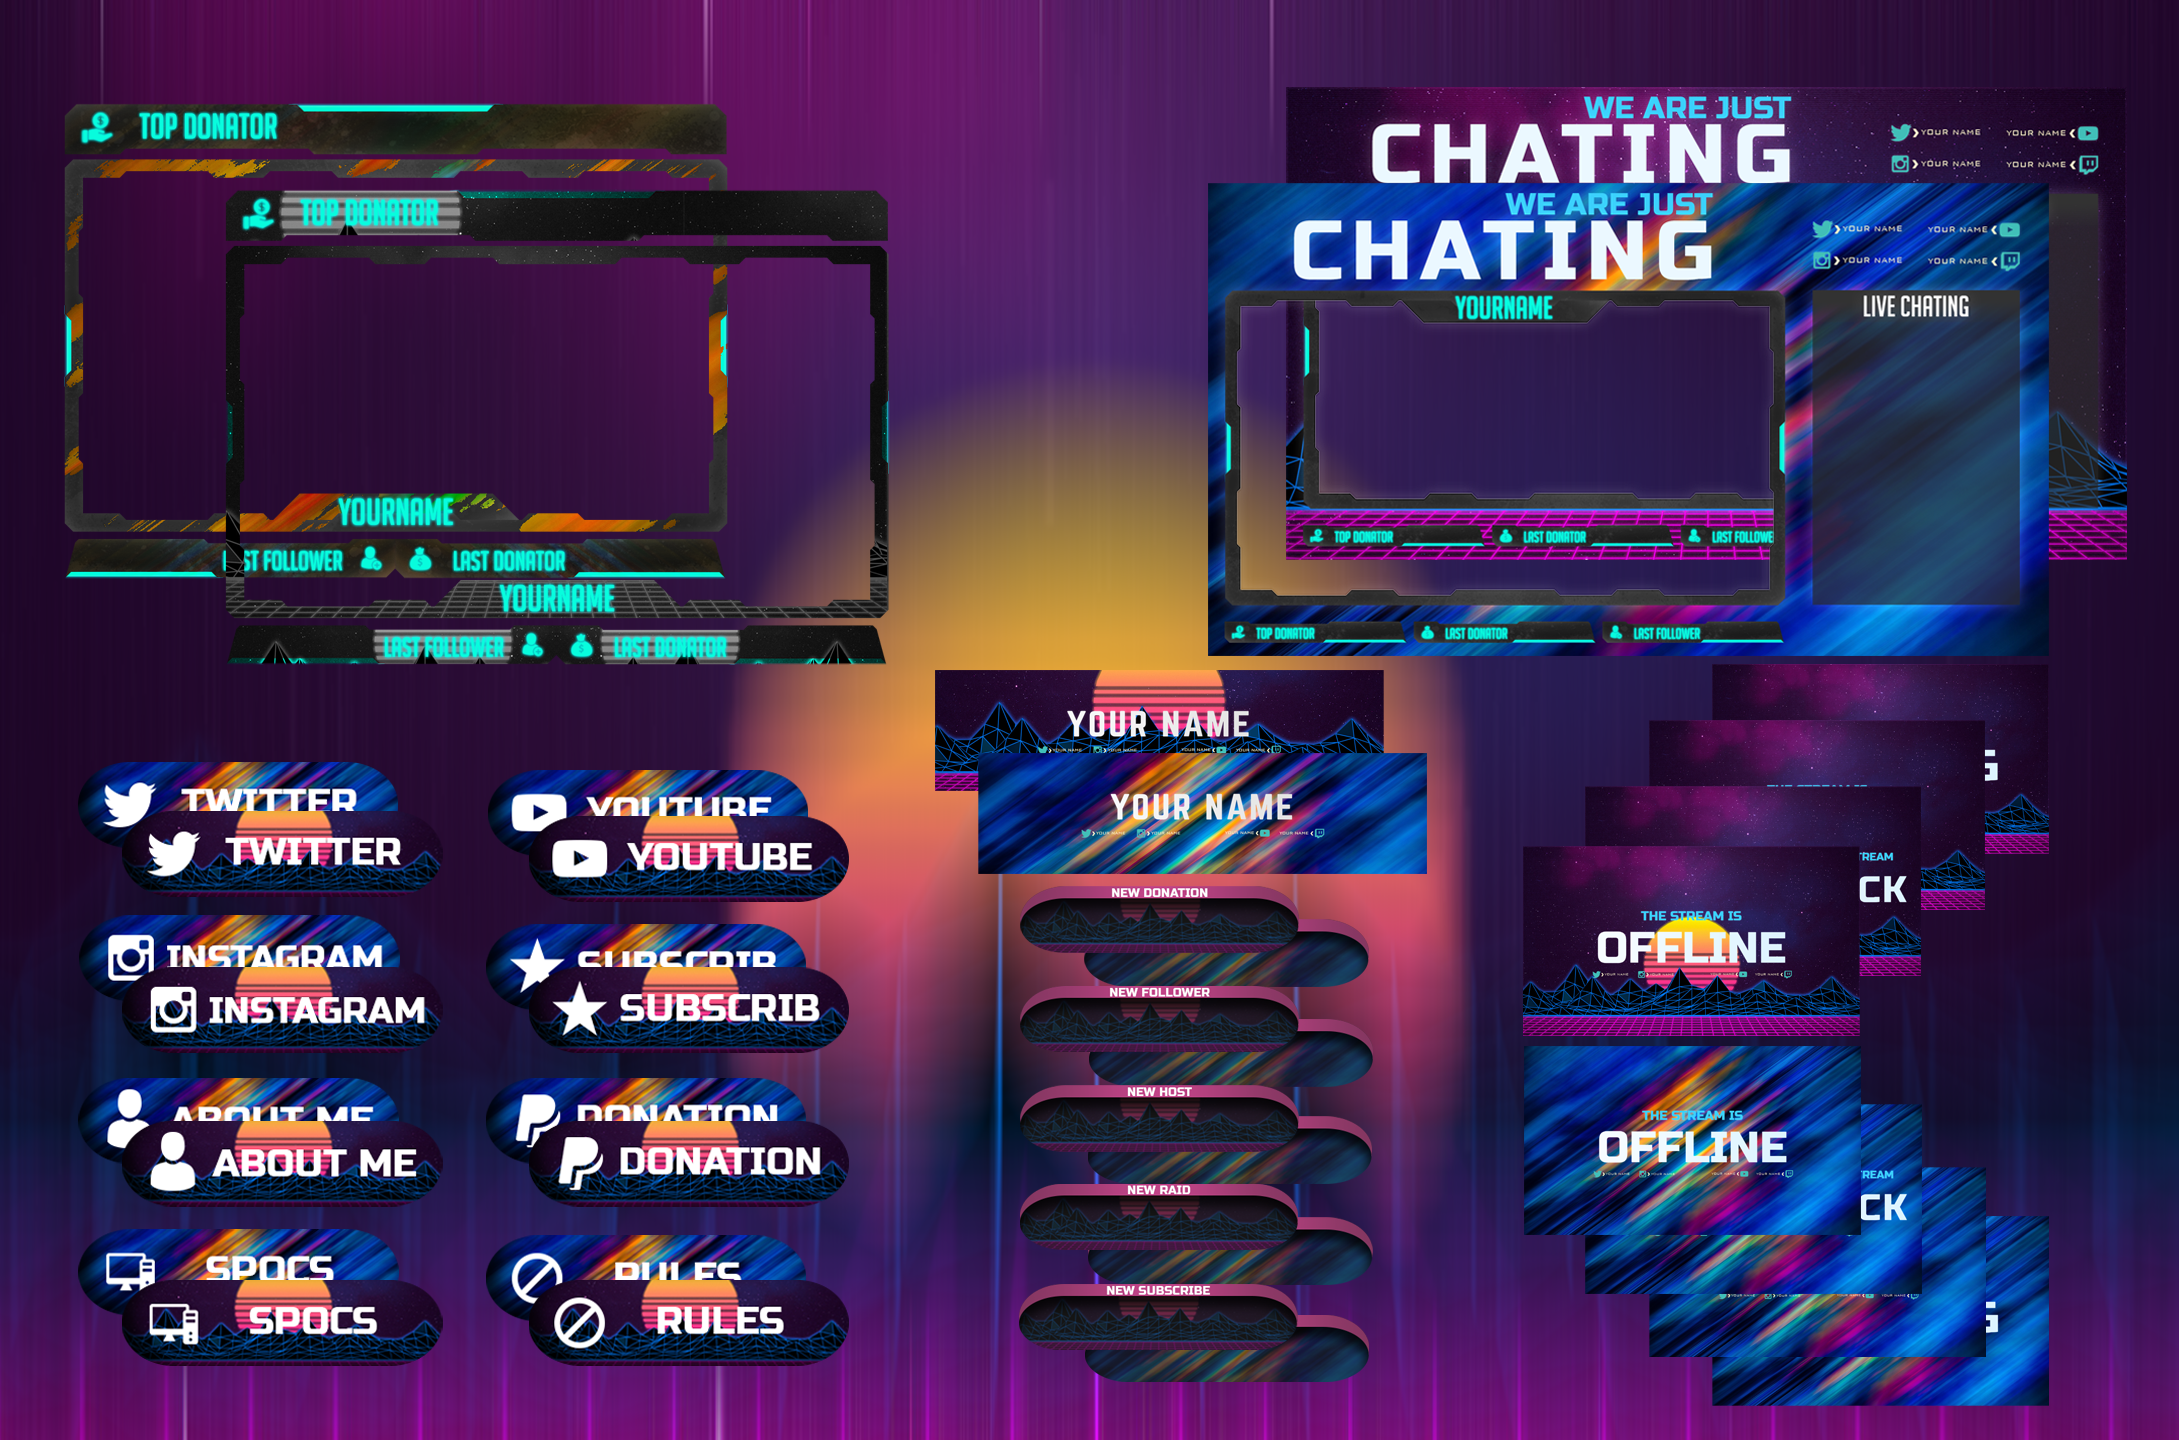 Tchalito226 I Will Twitch Overlay Gaming Design Logo And Screen For Streamers For 25 On Fiverr Com Game Design Book Design Layout Graphics Design Ideas